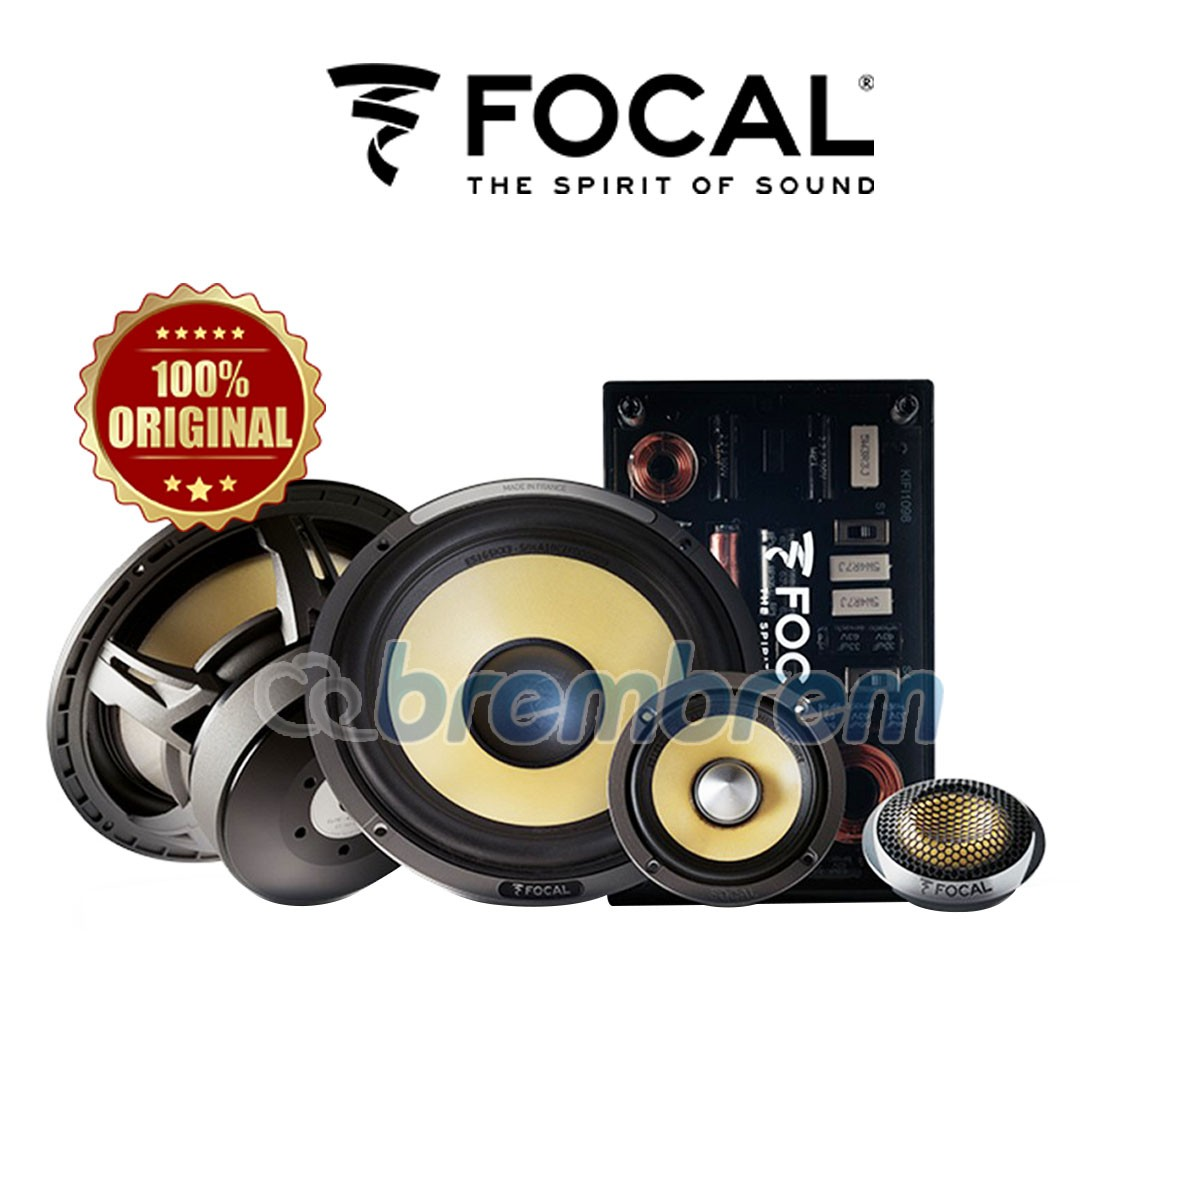 FOCAL ES 165 KX3 - SPEAKER 3 WAY